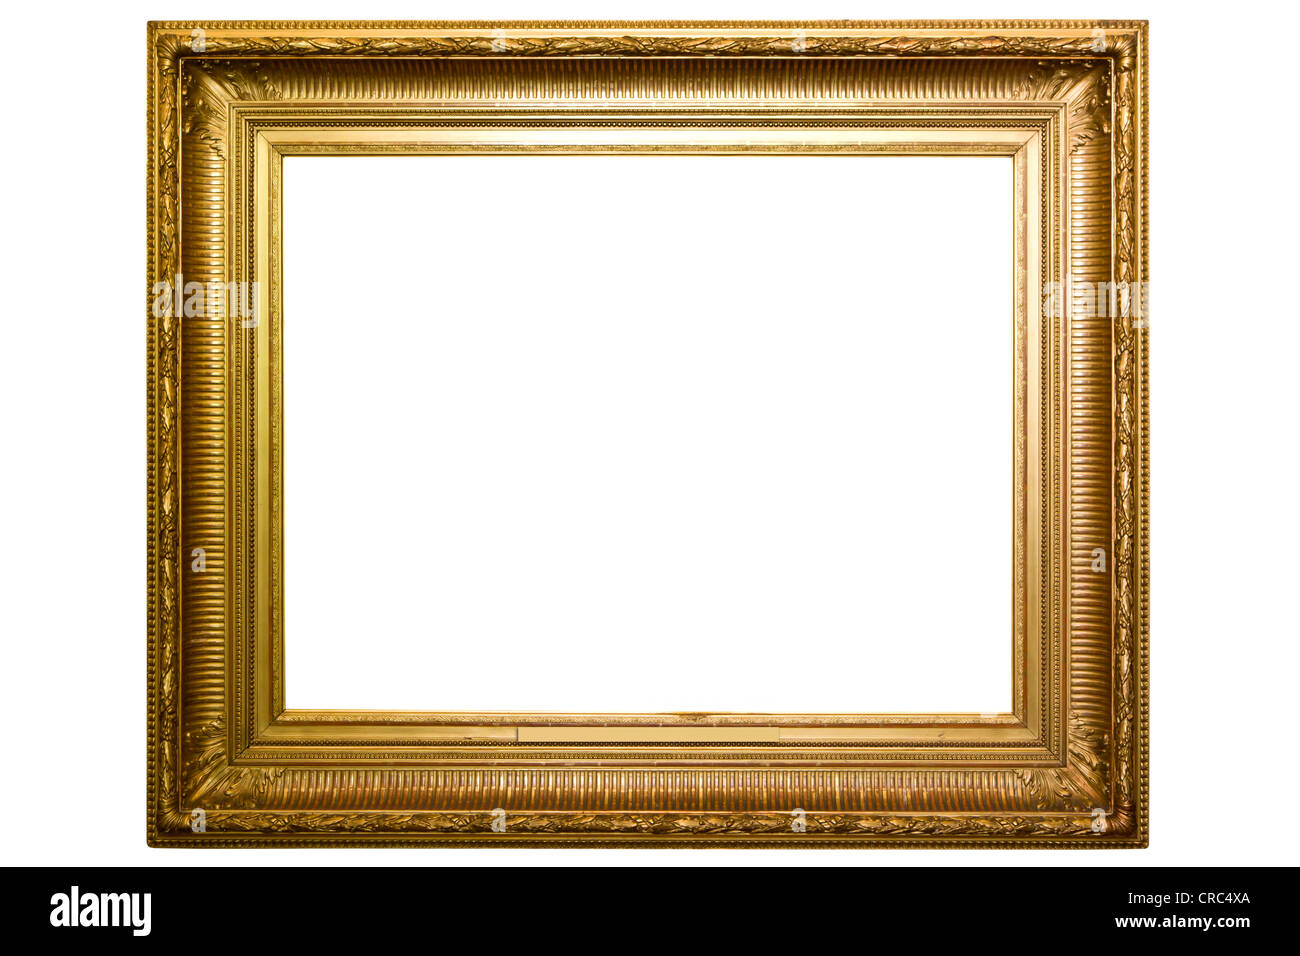 Gilt Gold Frame Stockfotos & Gilt Gold Frame Bilder - Seite 3 - Alamy